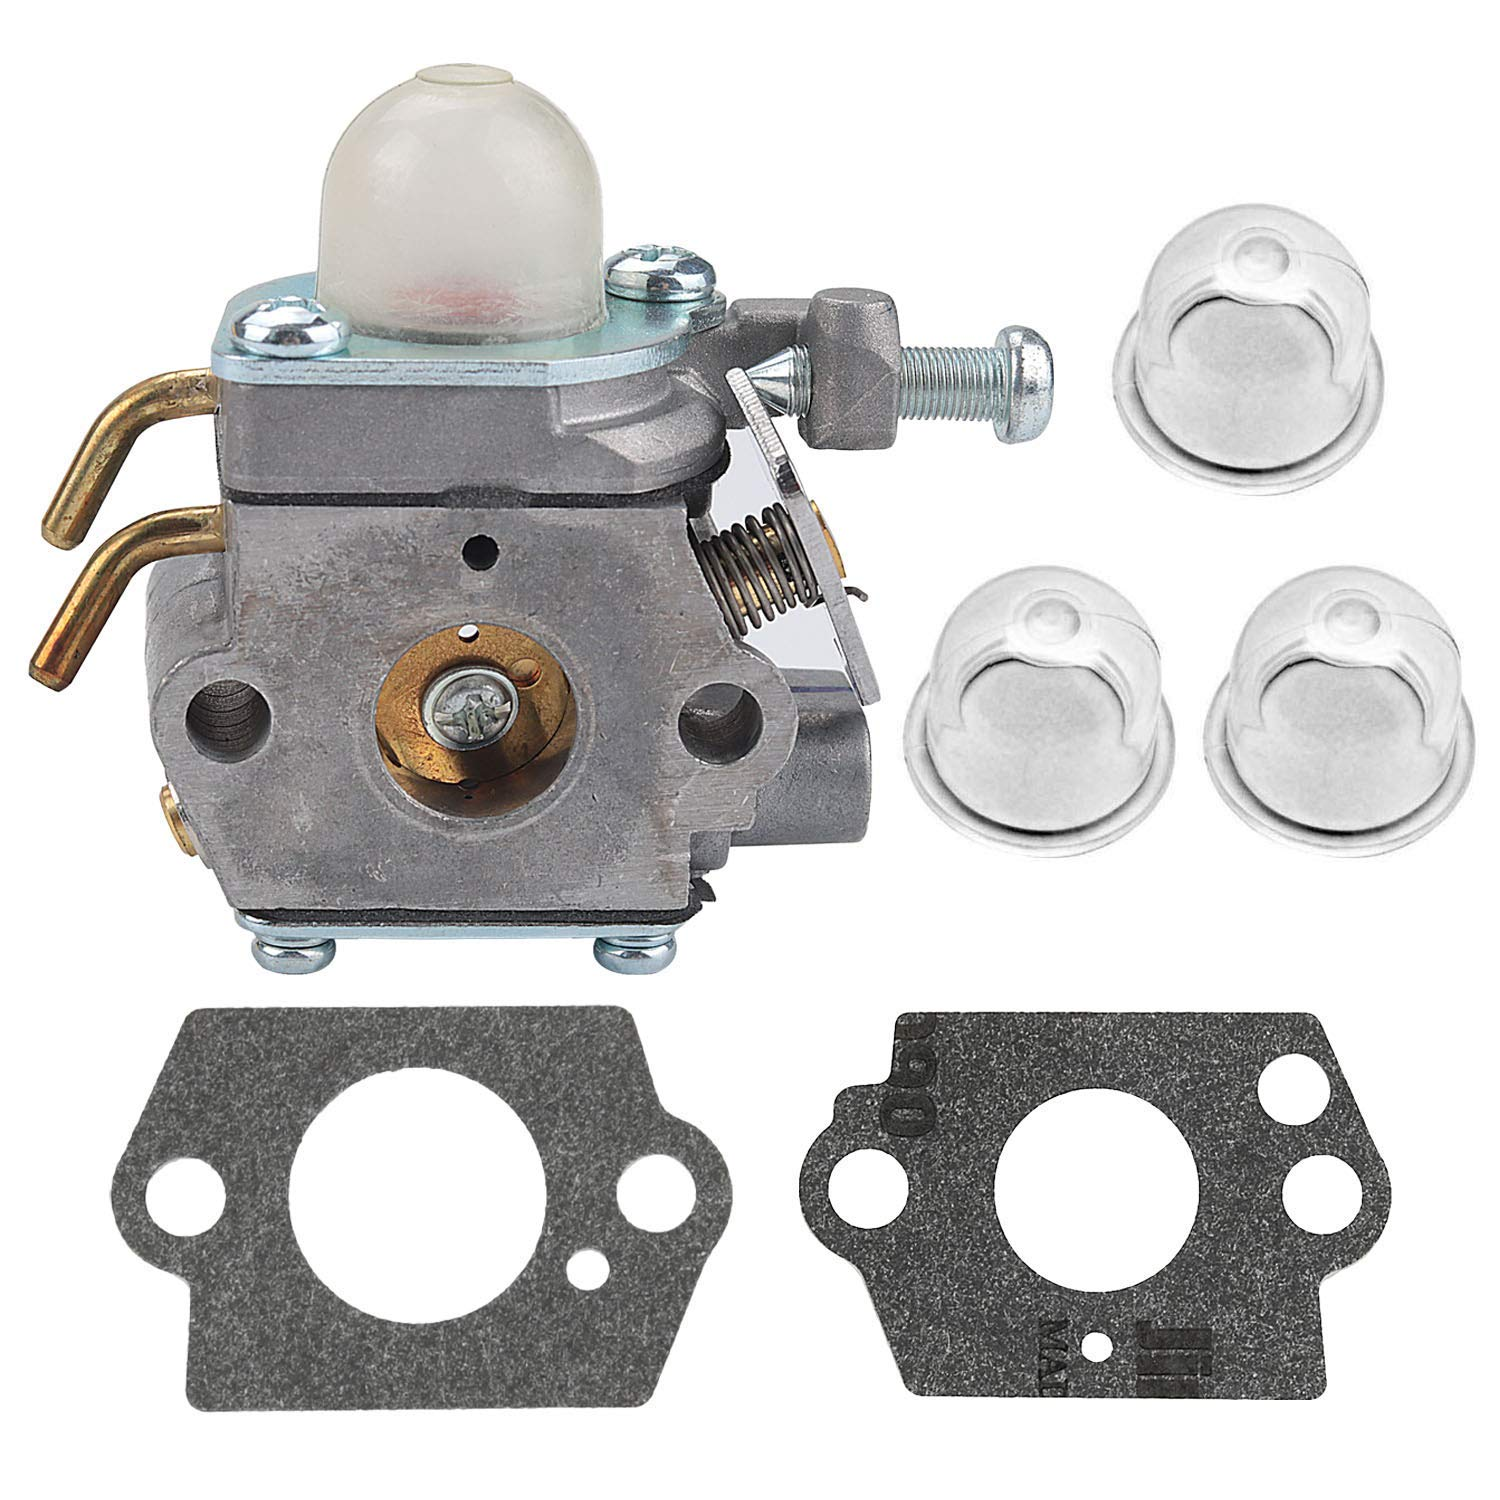 308054001 Carburetor with Gasket Primer Bulb for Homelite UT-08580 08981 50500 21506 21947 26cc Blower Trimmer Carb